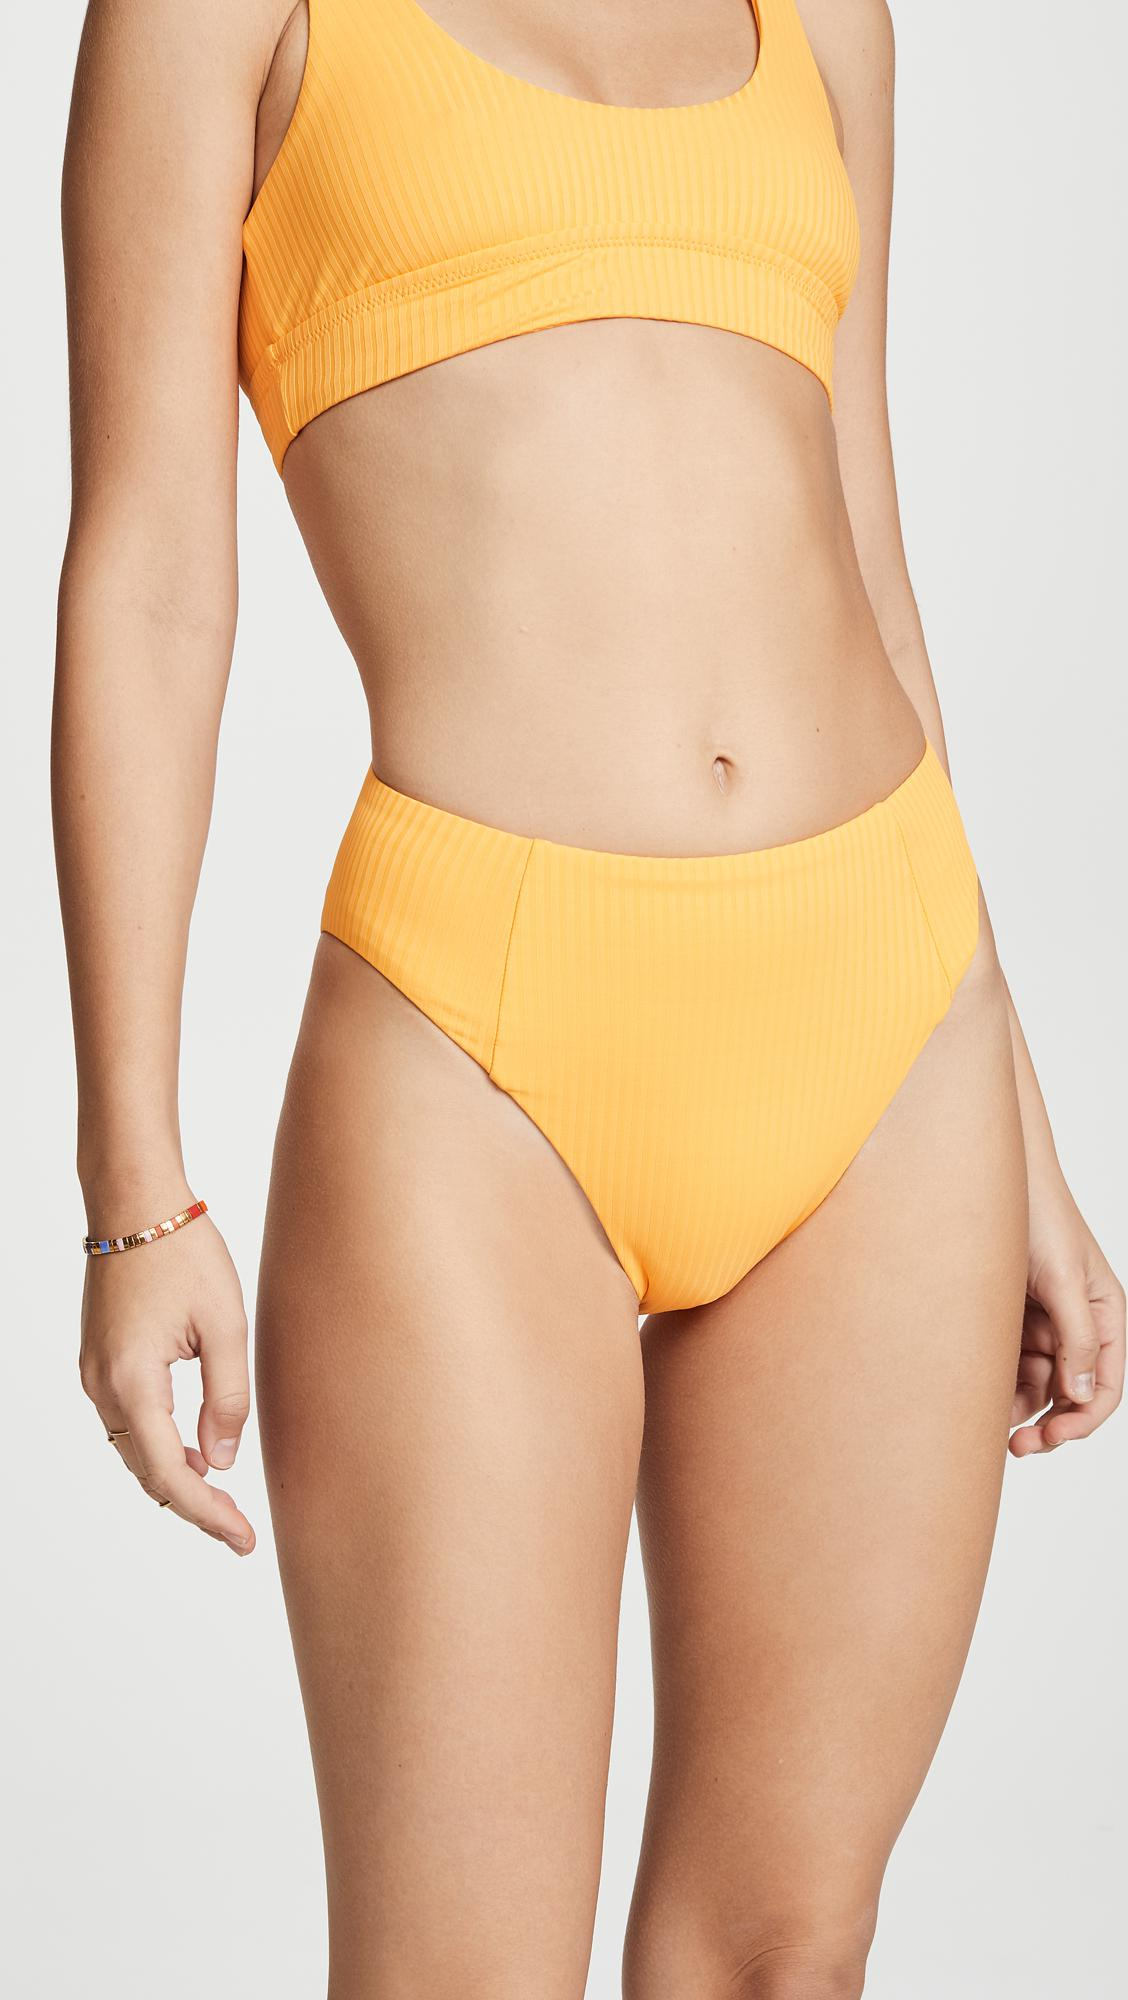 186f942d9f2 Gallery. Previously sold at: Shopbop · Women's High Waisted Bikini Bottoms  ...